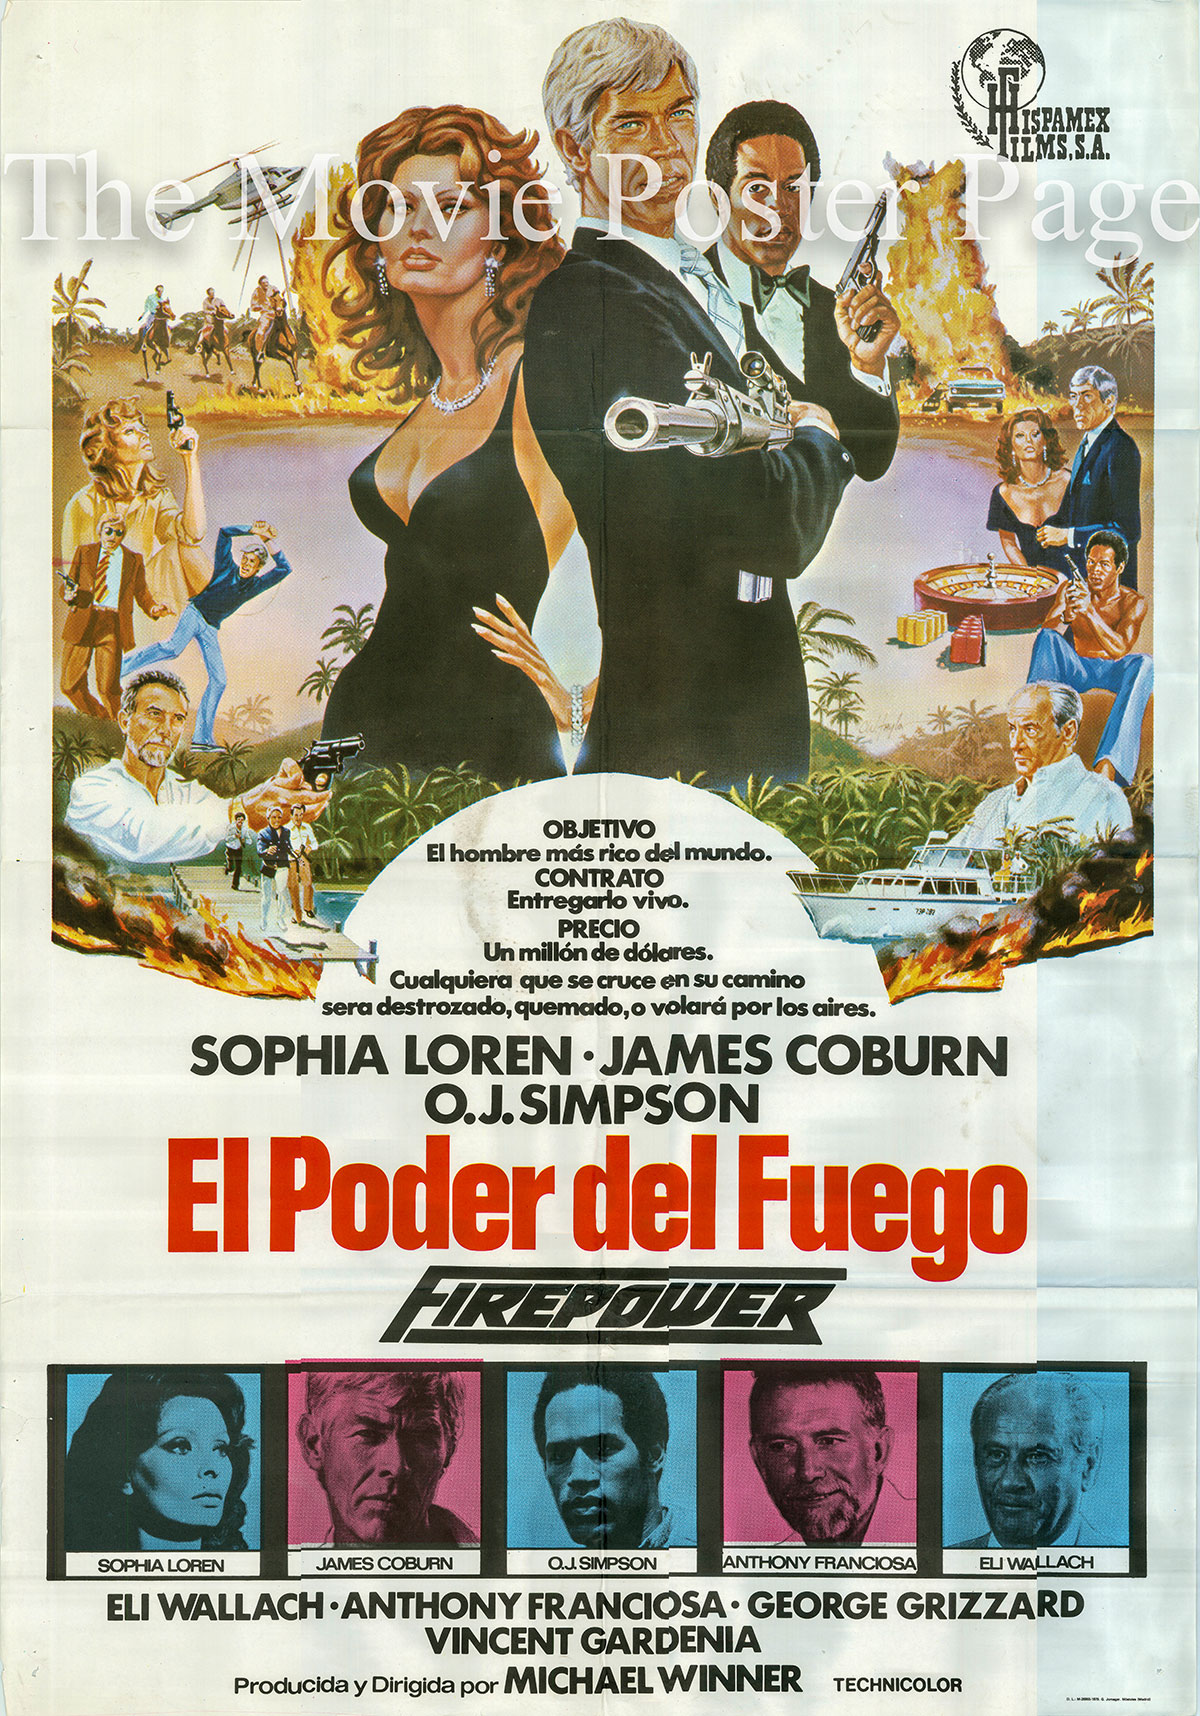 Pictured is a Spanish one-sheet for the 1979 Michael Winner film Firepower starring James Coburn as Jerry Fanon.